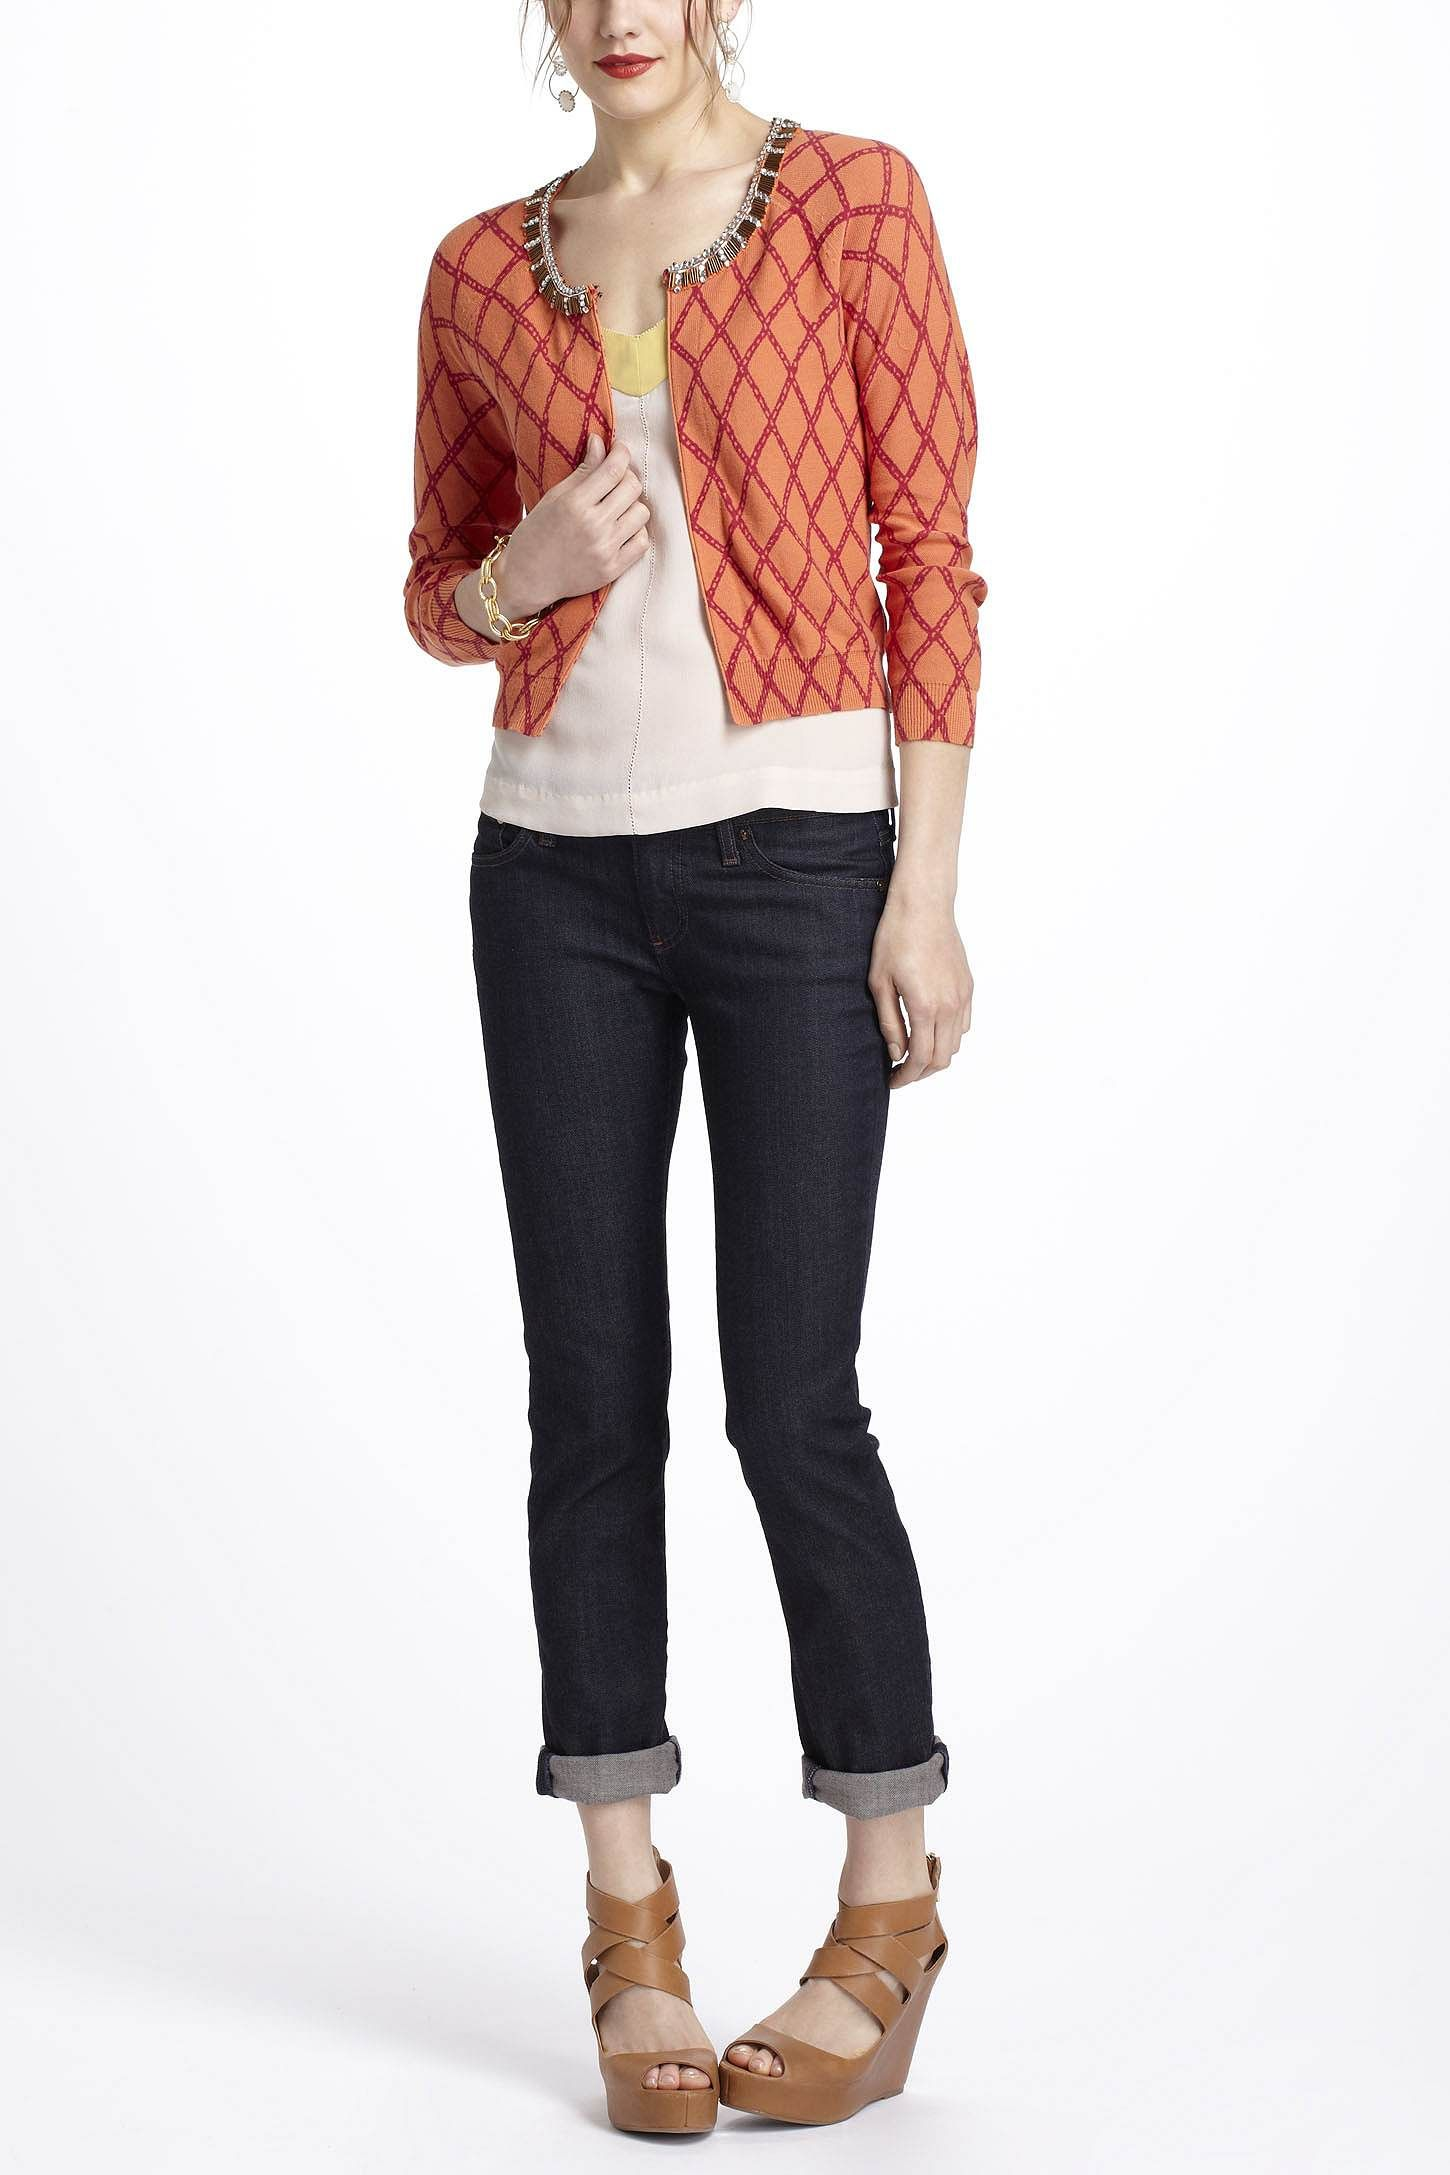 Anthropologie...Lattice-In-The-Rough Cardigan...Love the sweateer and the look of the outfit